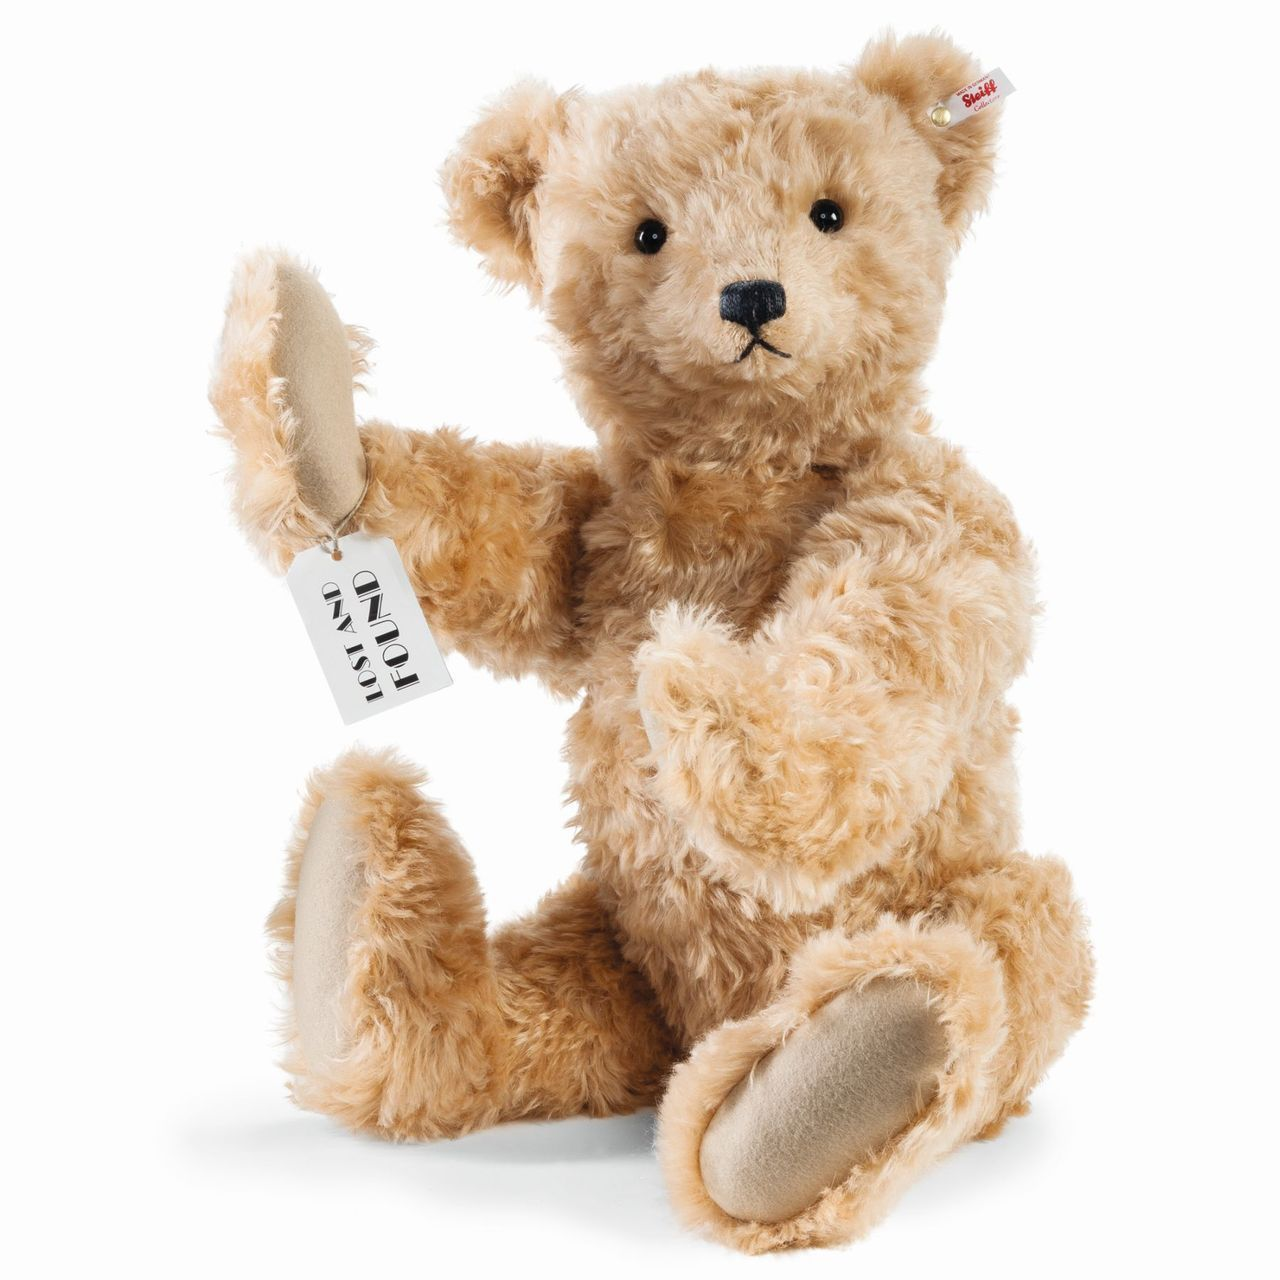 Steiff Lost And Found Teddy Bear Limited Edition EAN 682889 by